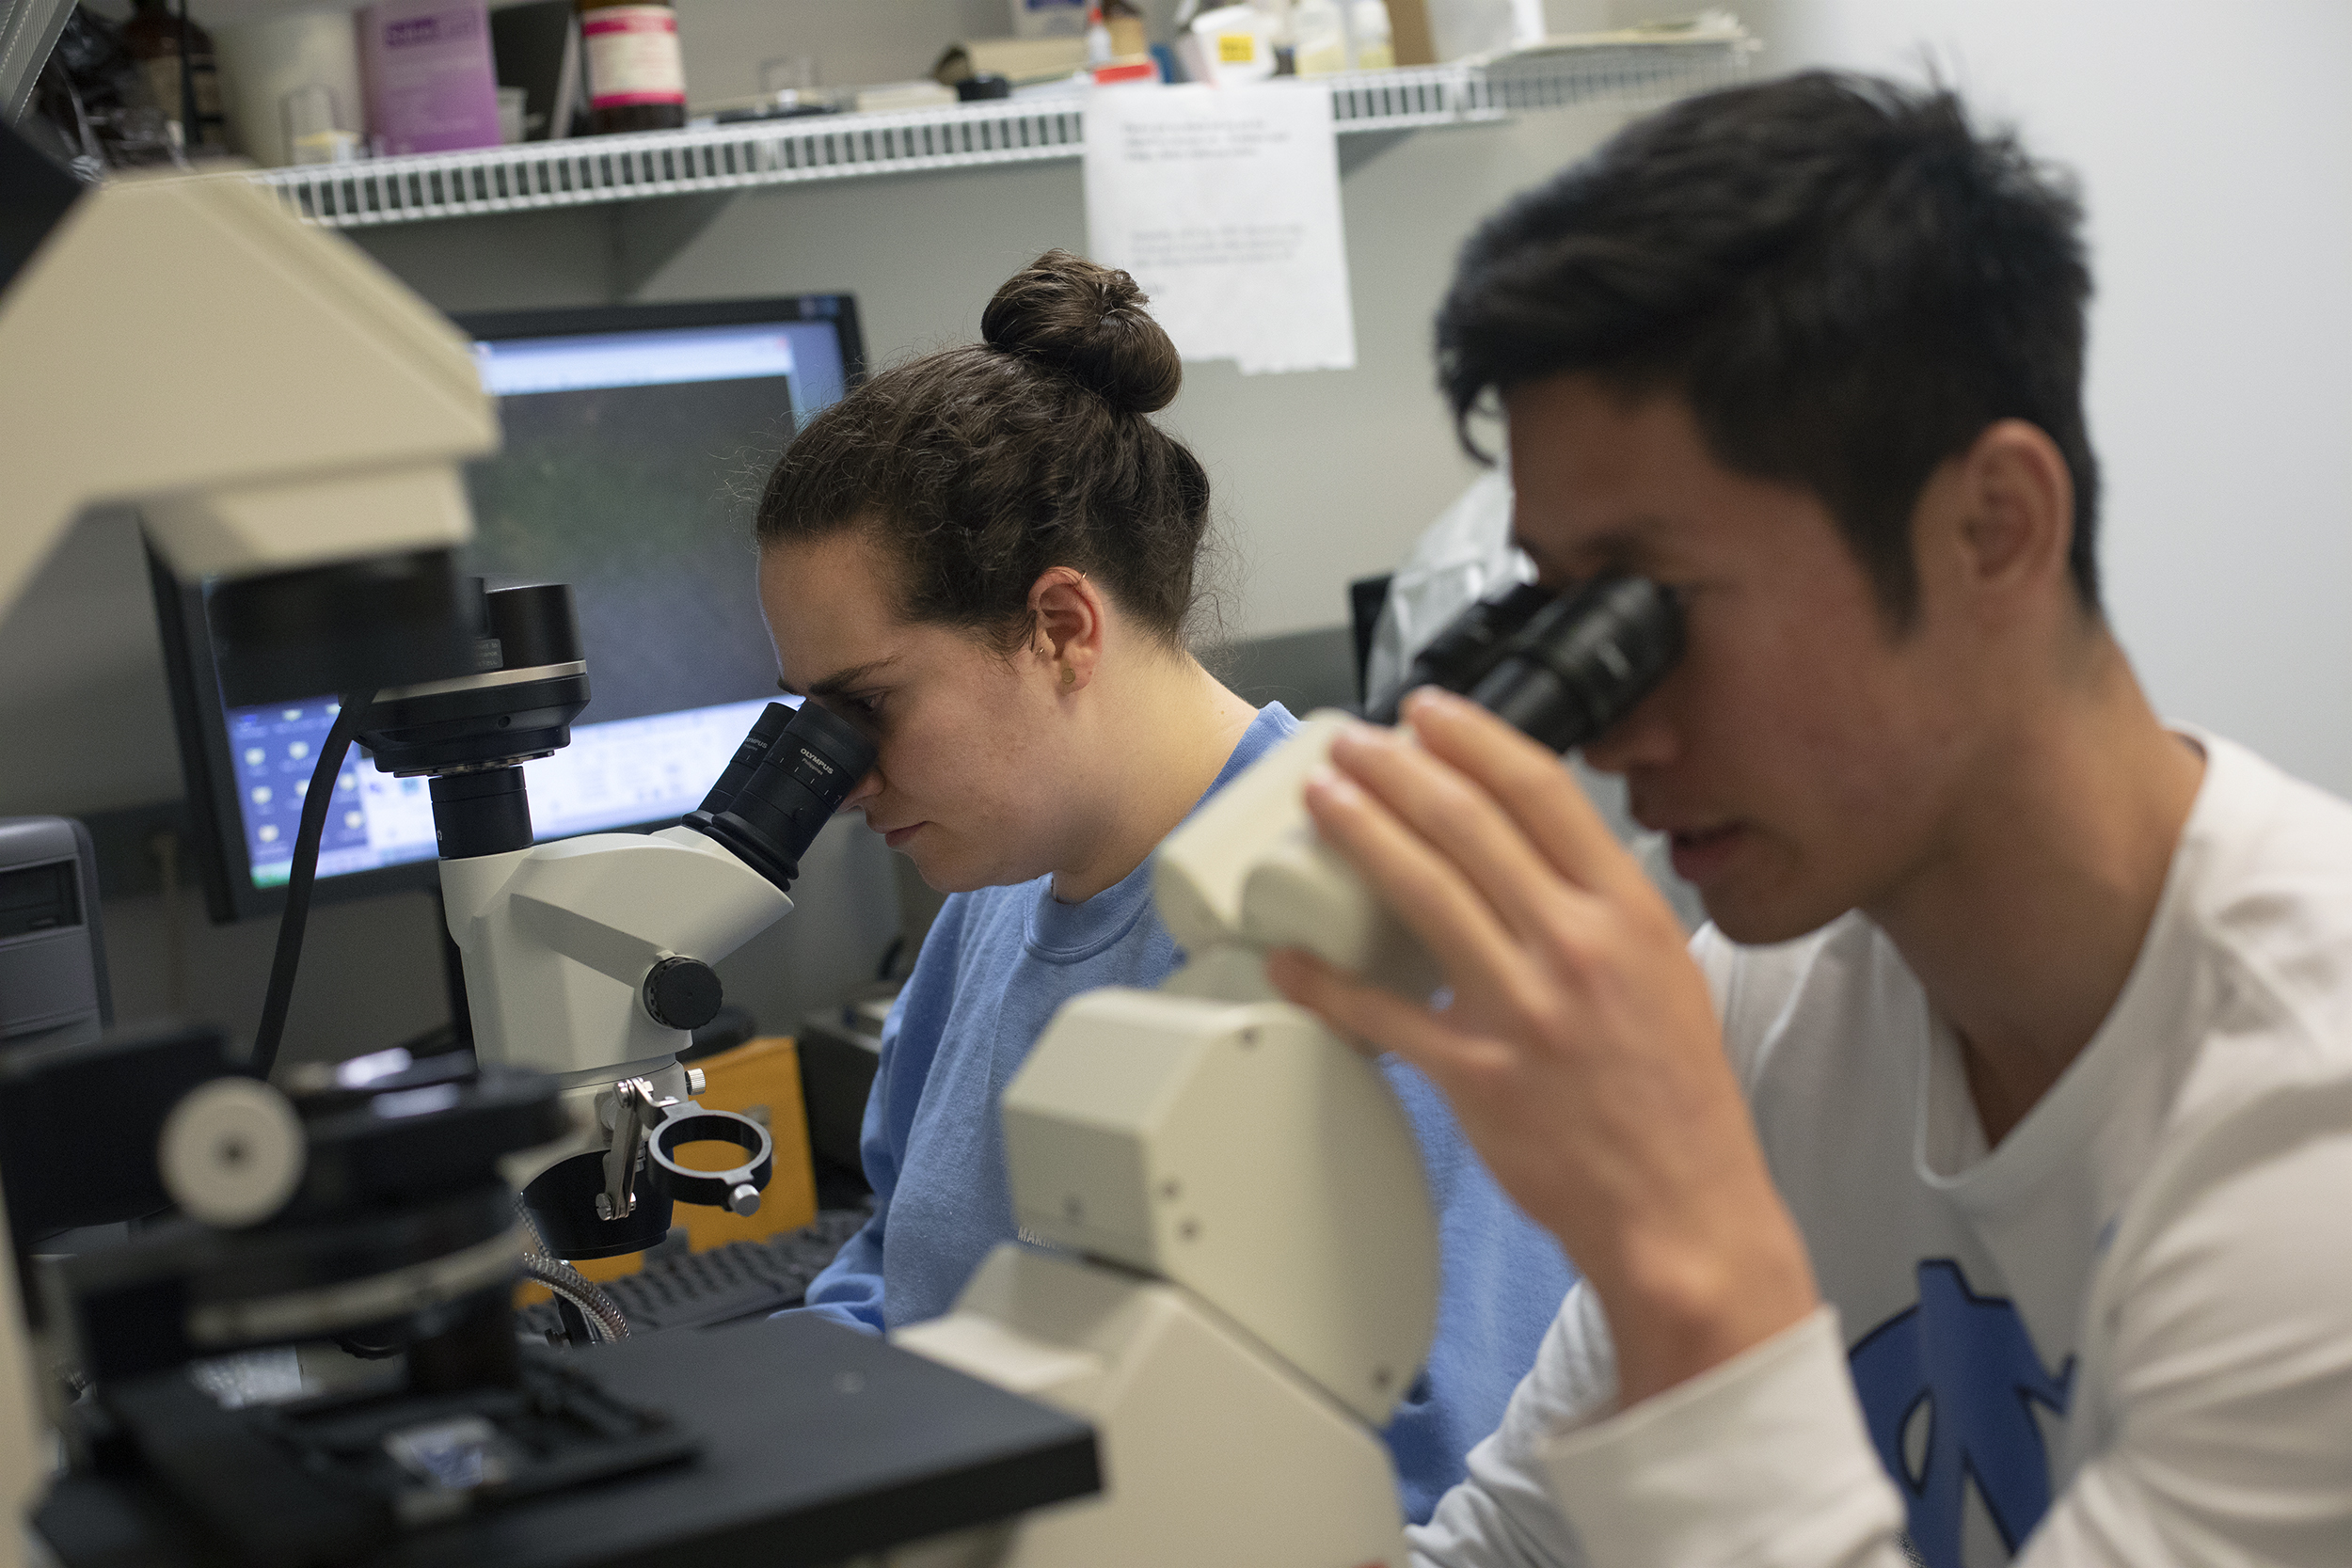 Two students look under microscopes.